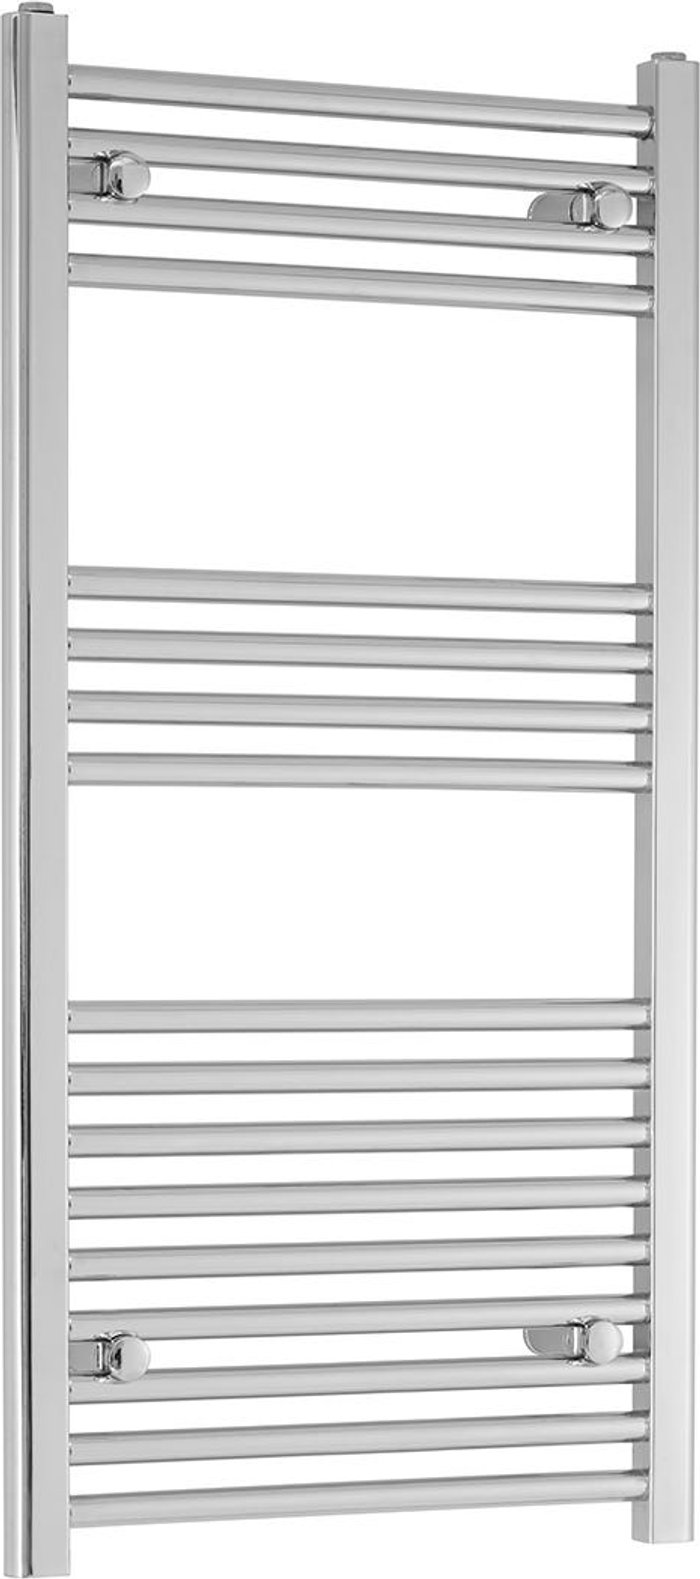 Towelrads Towelrads Heating Style Blythe Ladder Rail 1000x400mm Straight - Chrome